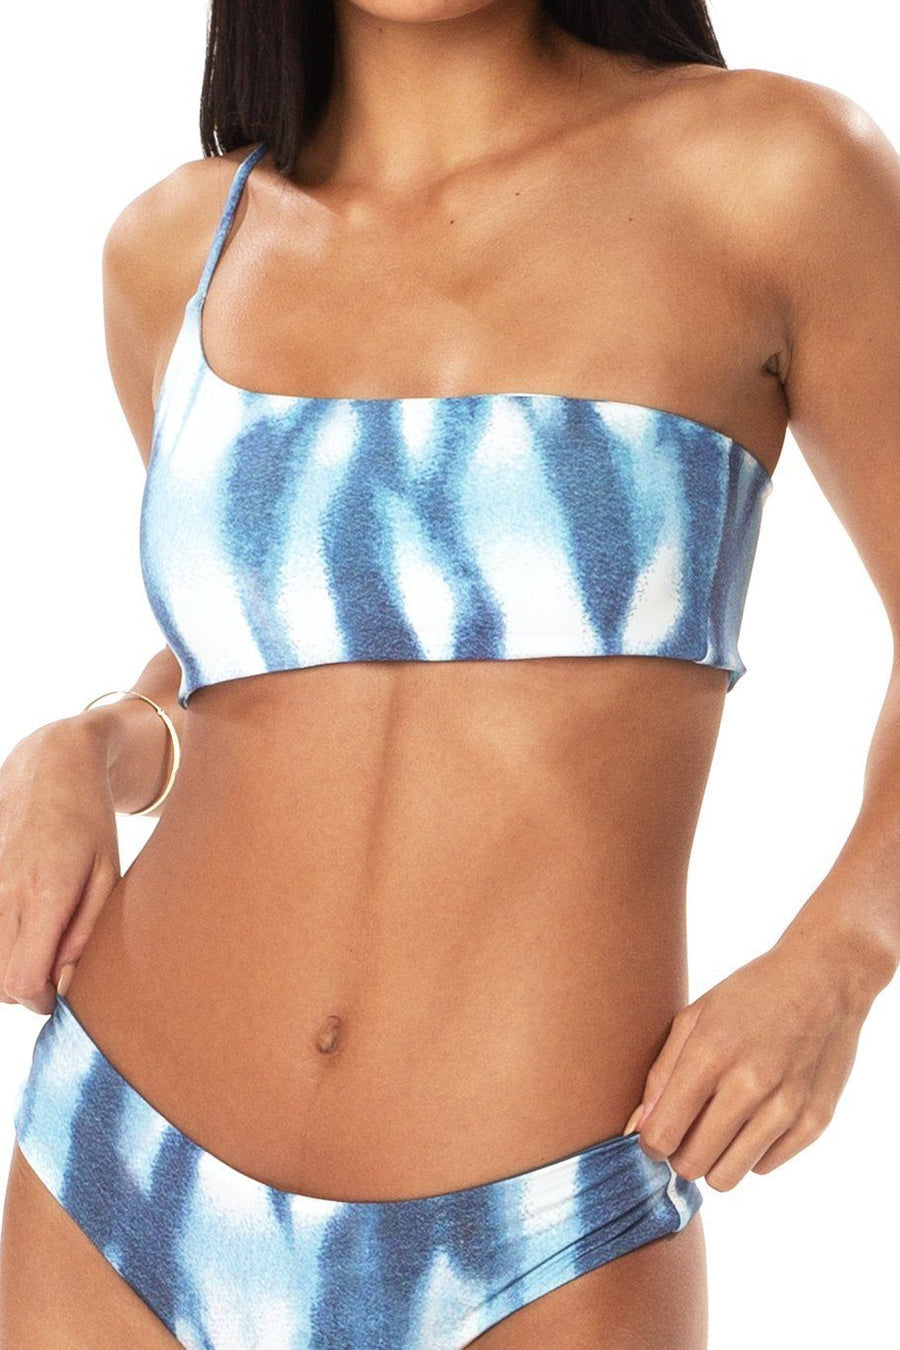 Tulum One Shoulder Top - Blue Tie Dye - Shore